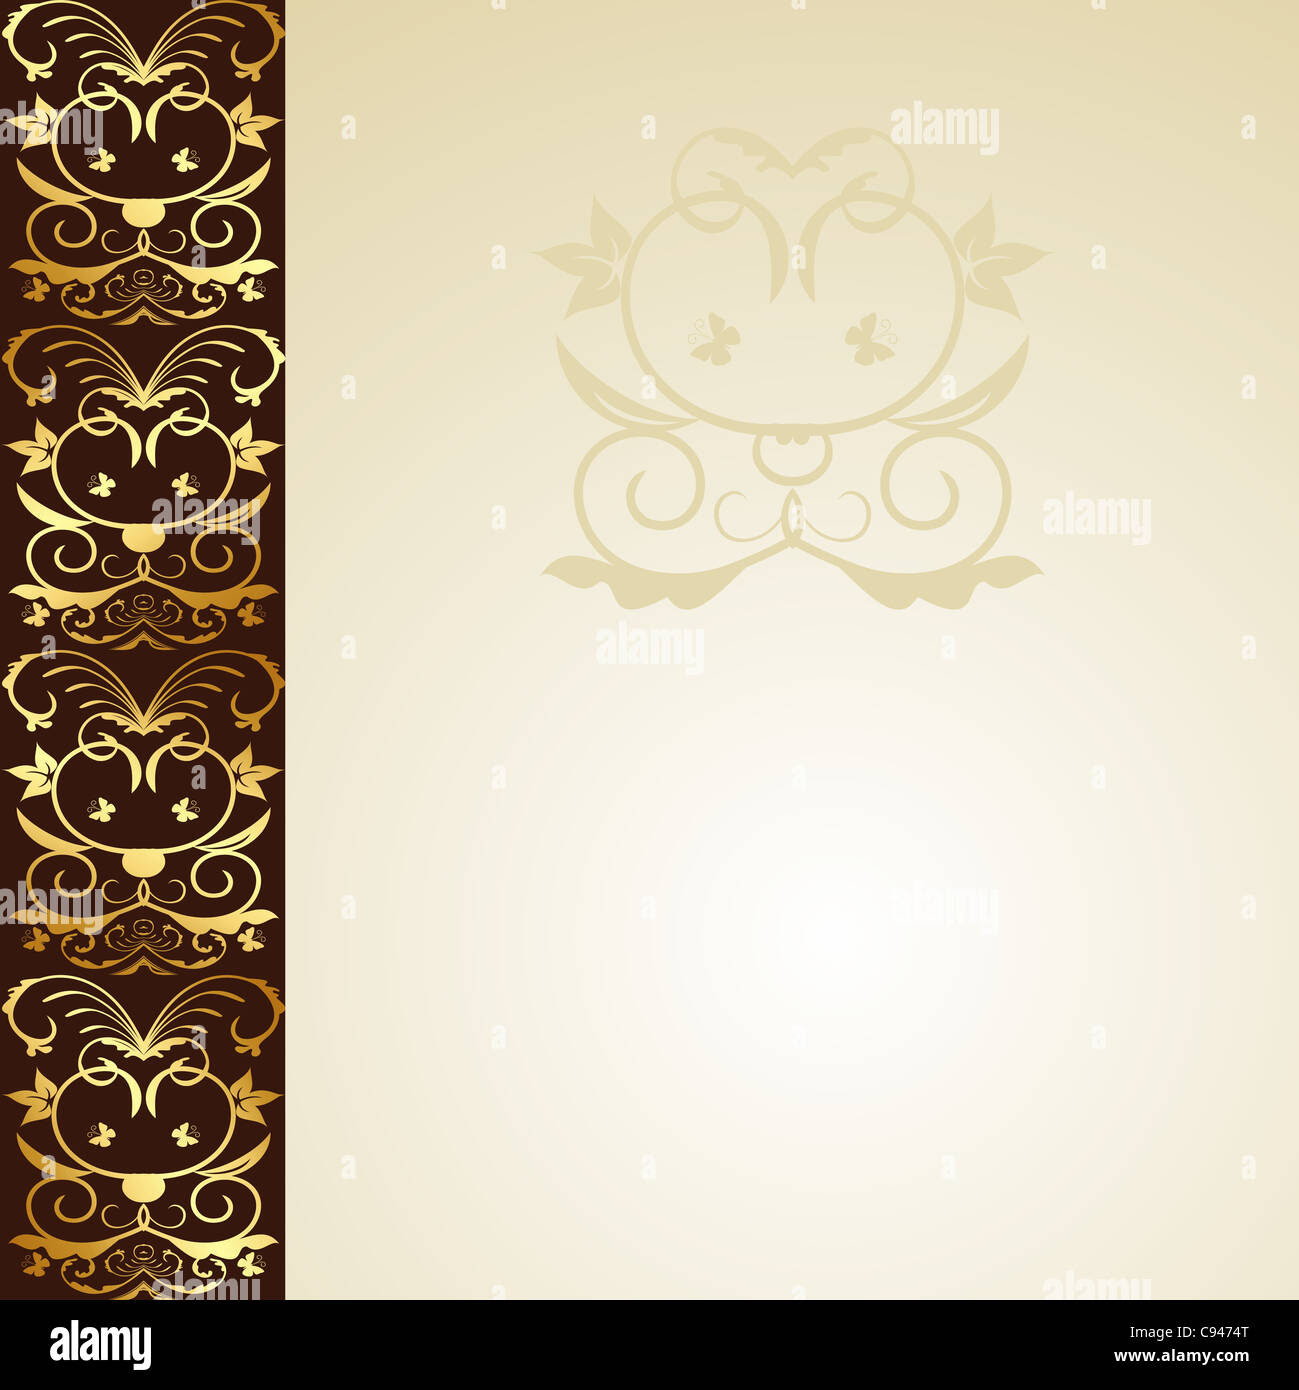 Indian Wedding Invitation Background Designs Free Download ...